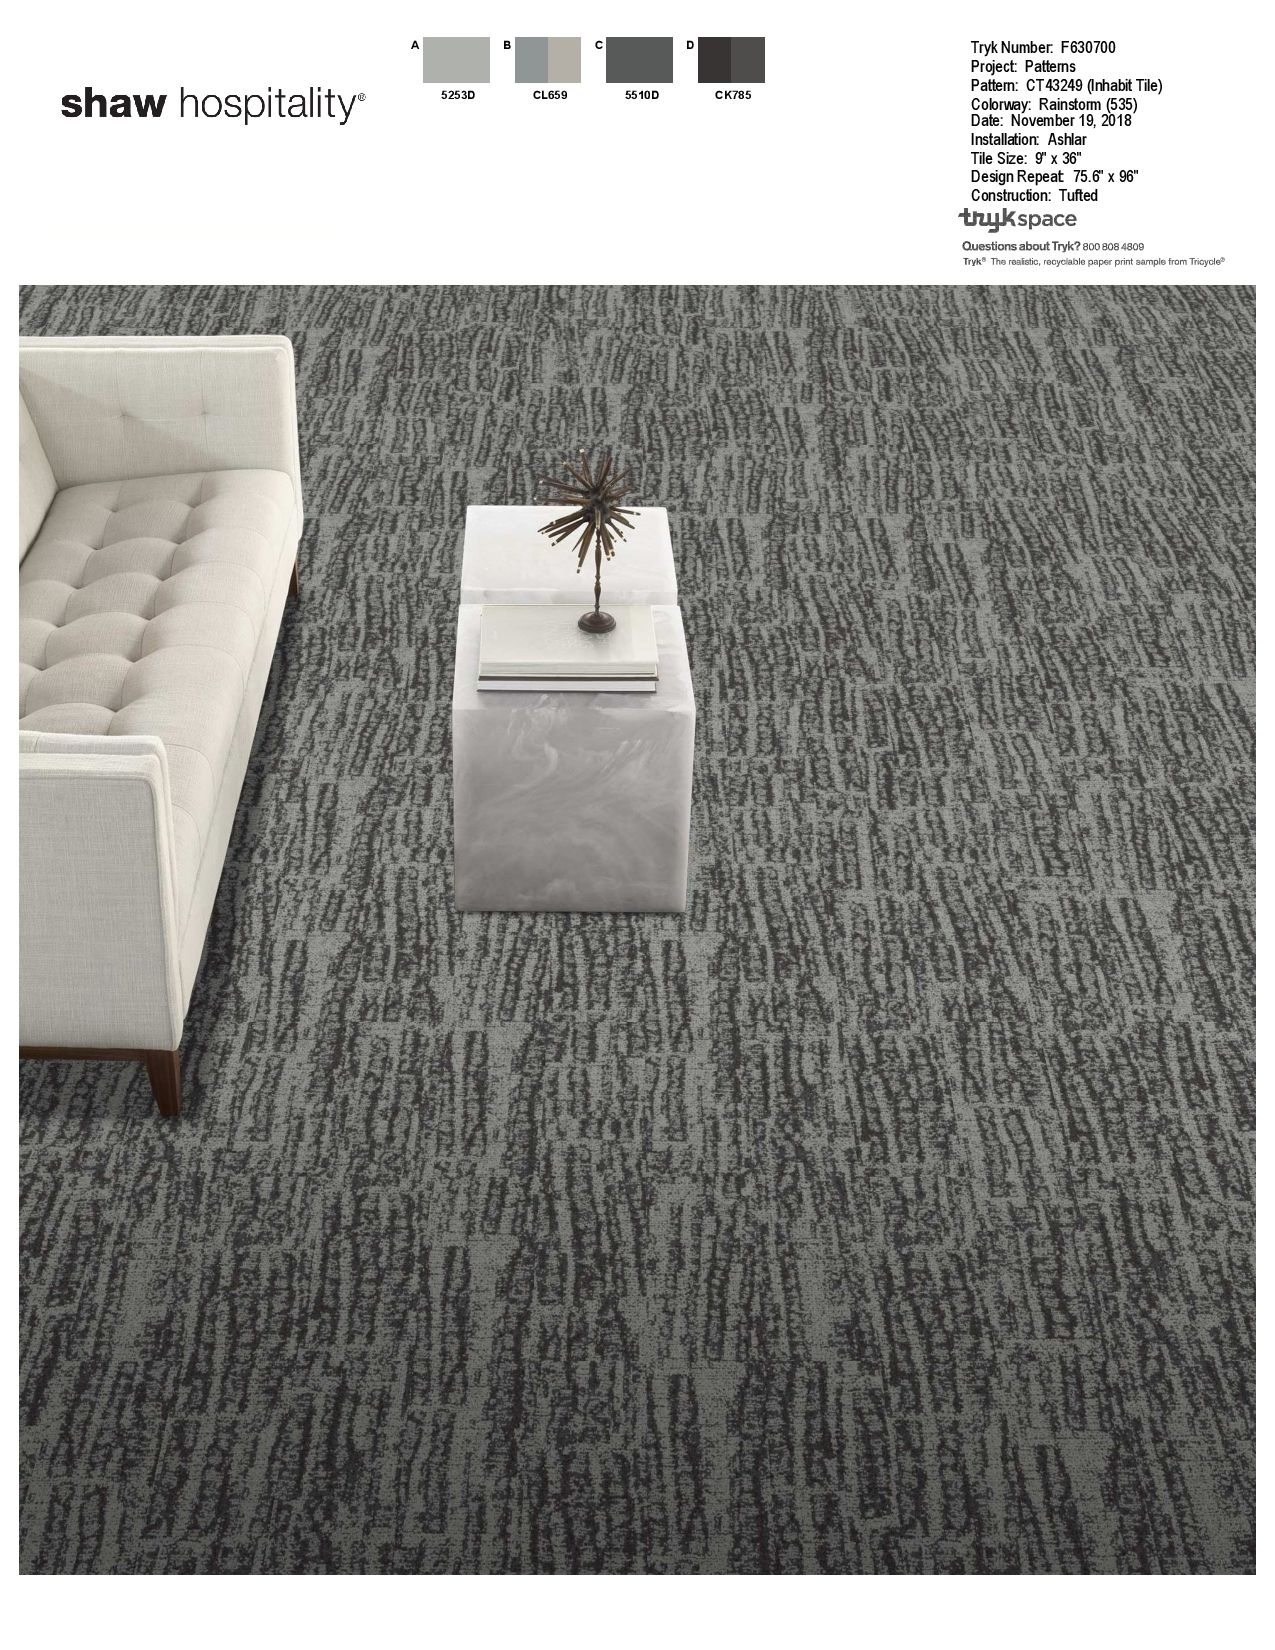 F630700 With Images Shaw Hospitality Carpet Design Repeats